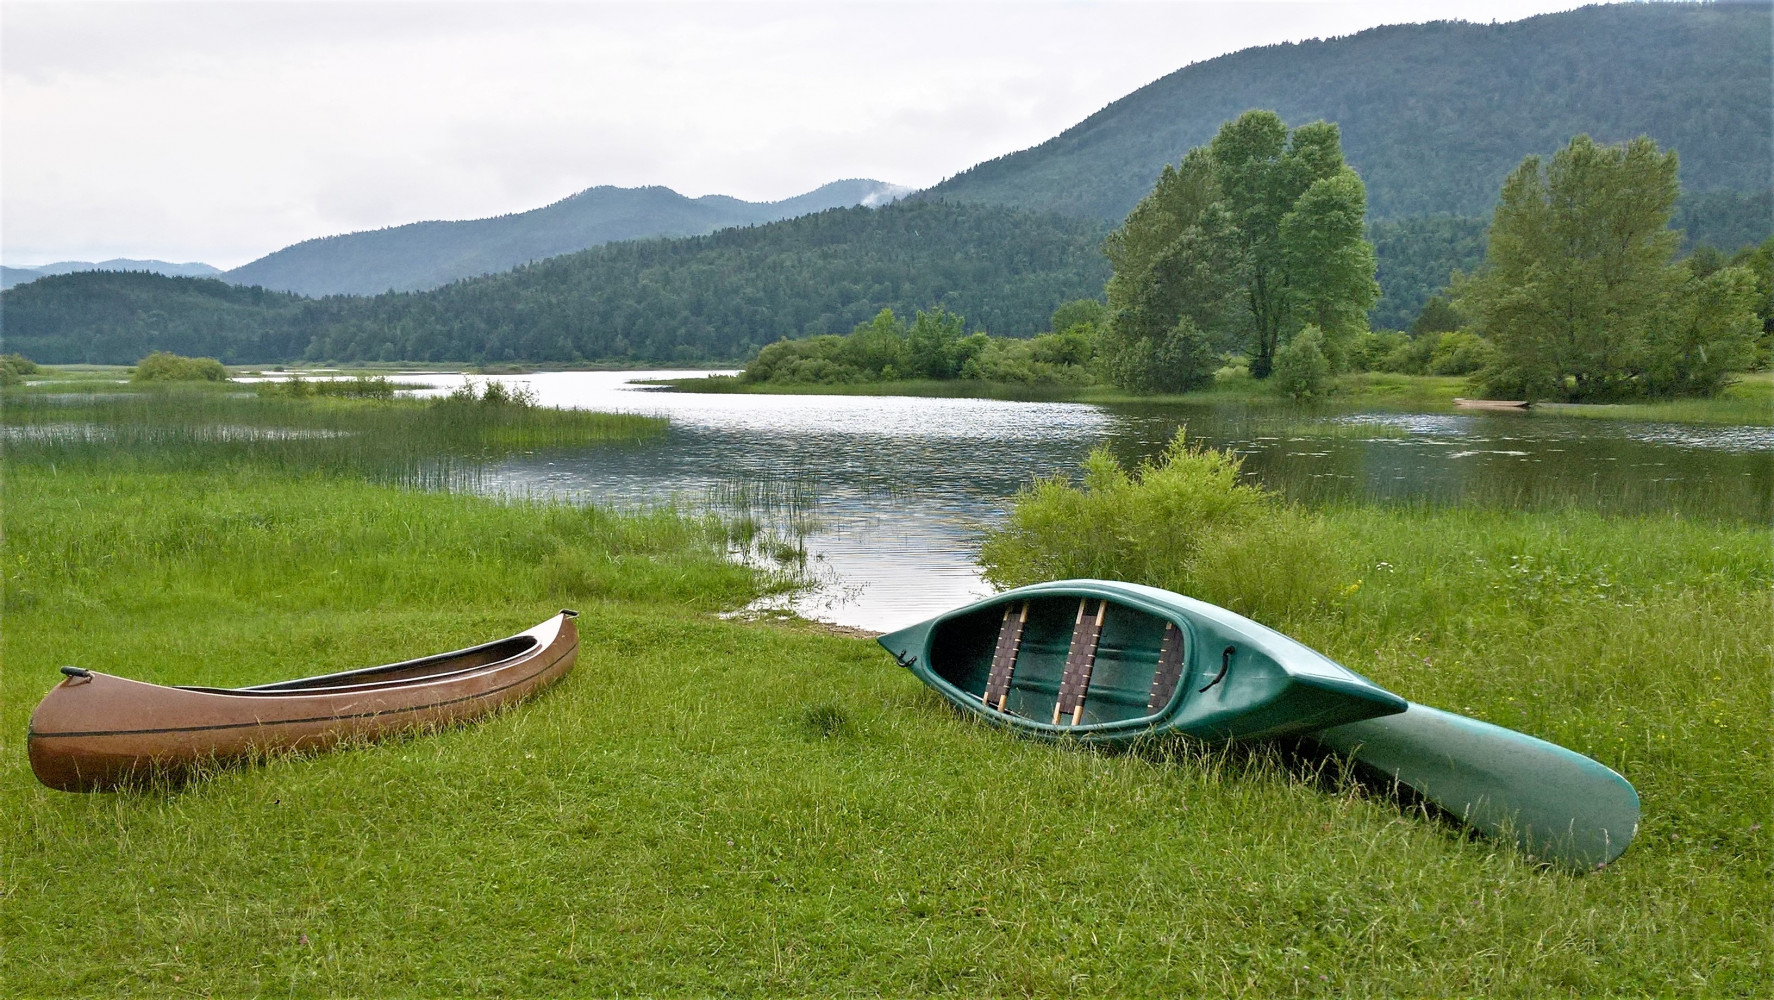 Lake Cerknica, one of the biggest intermittent lakes in Europe.